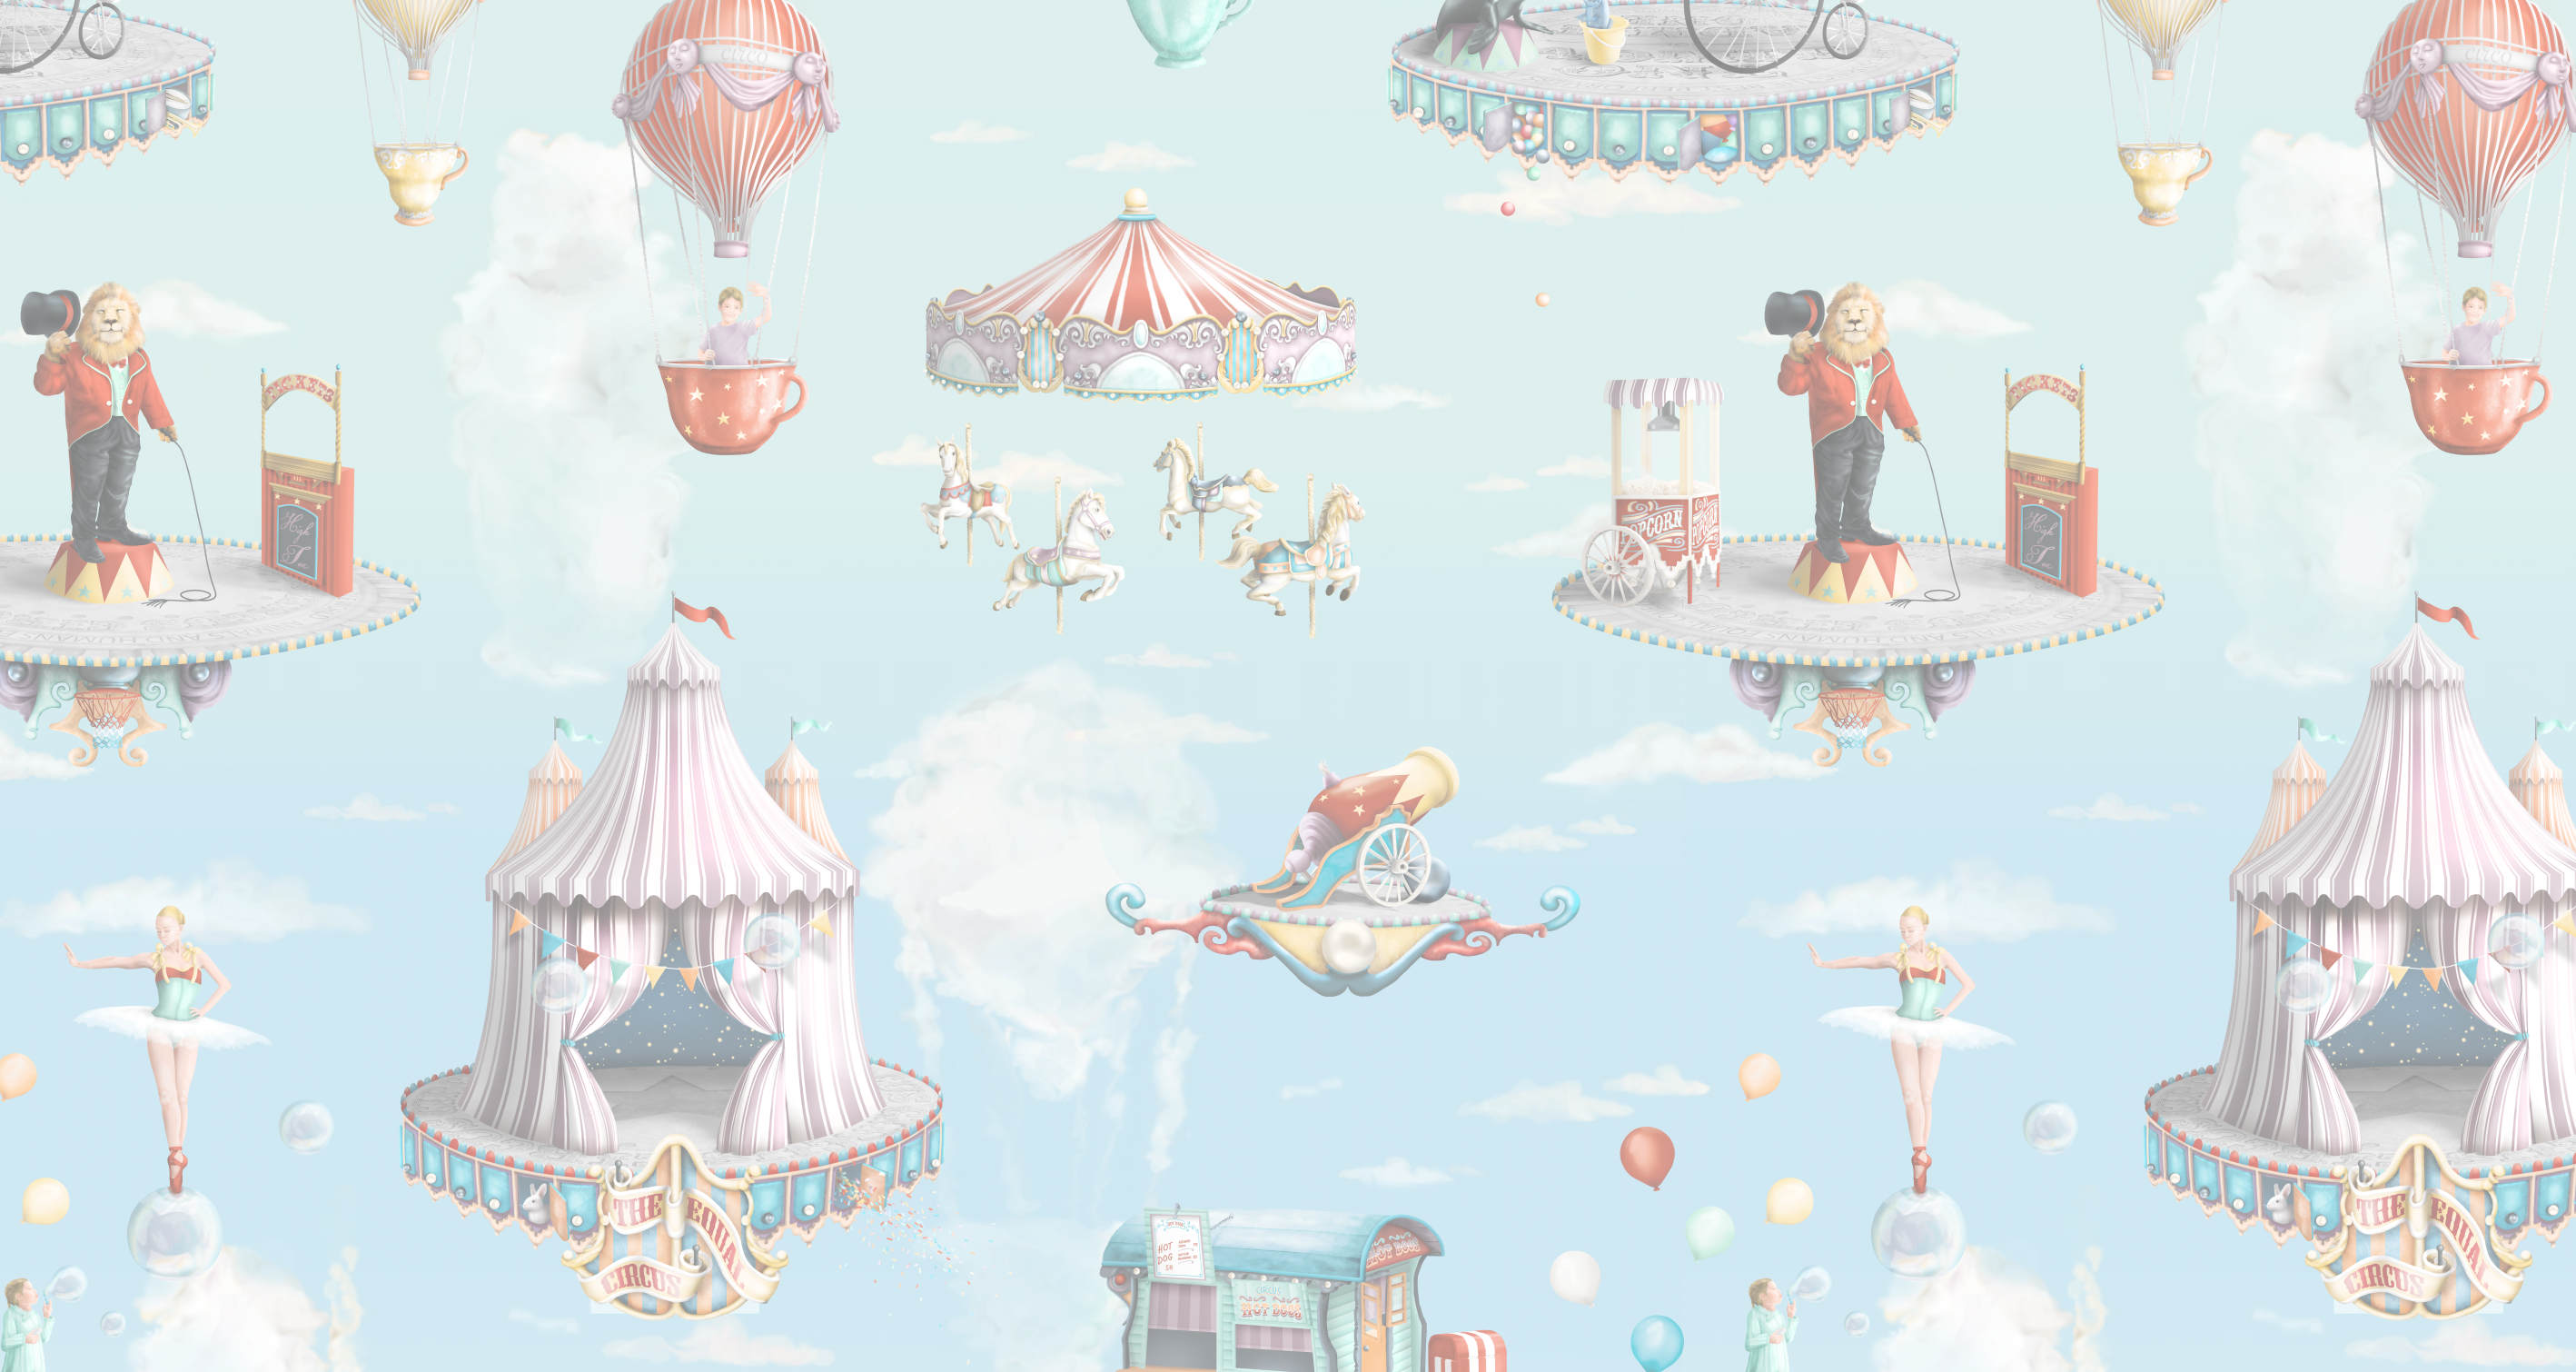 Kids equal fantasy circus wallpaper mural in pastel and aqua colours. Set in the sky where there is harmony between animals and humans. Clouds make different circus shapes.